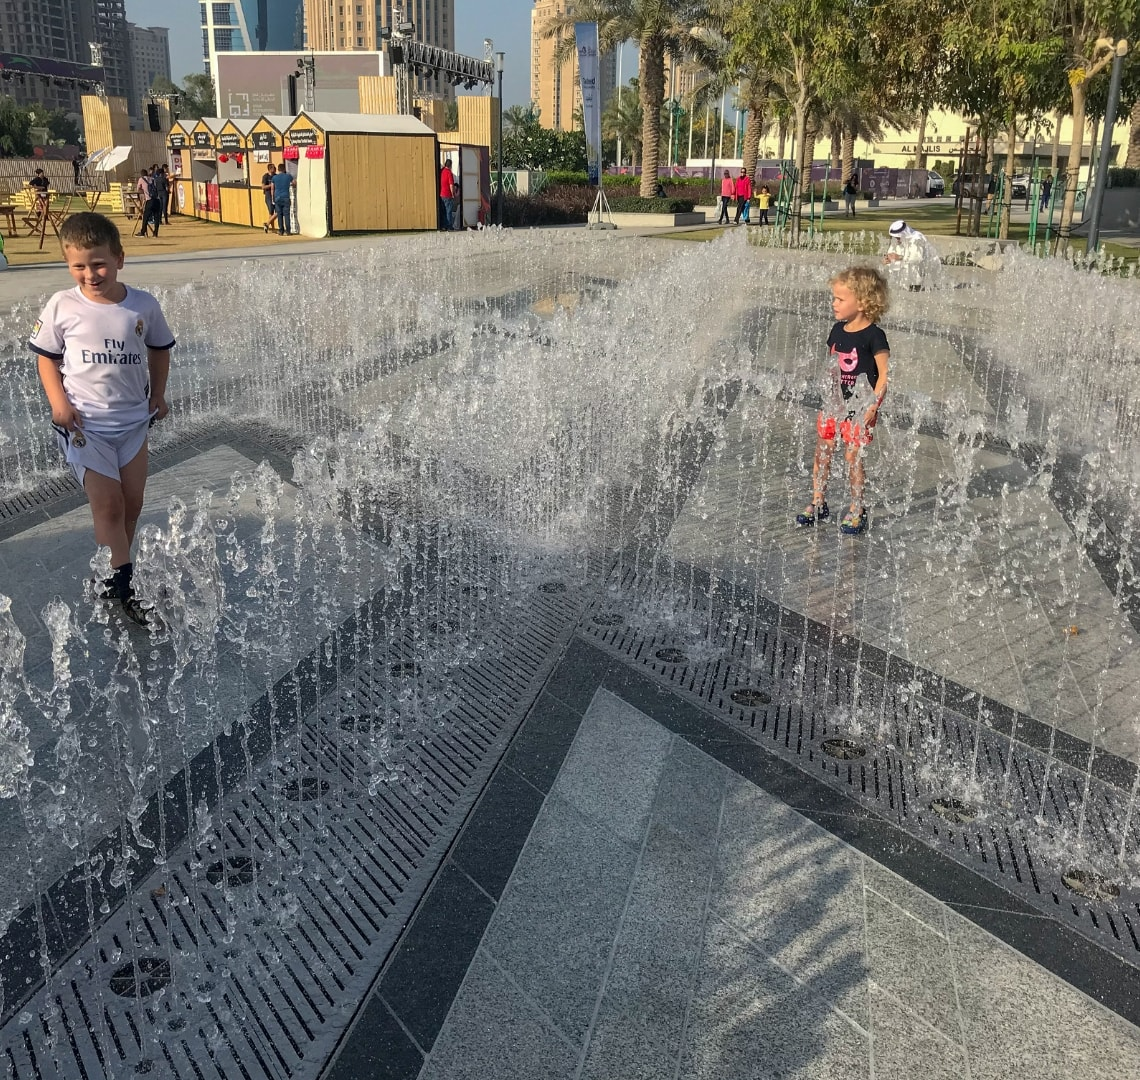 11 incredible things to do in Qatar - the Things playing in some outdoor water fountains